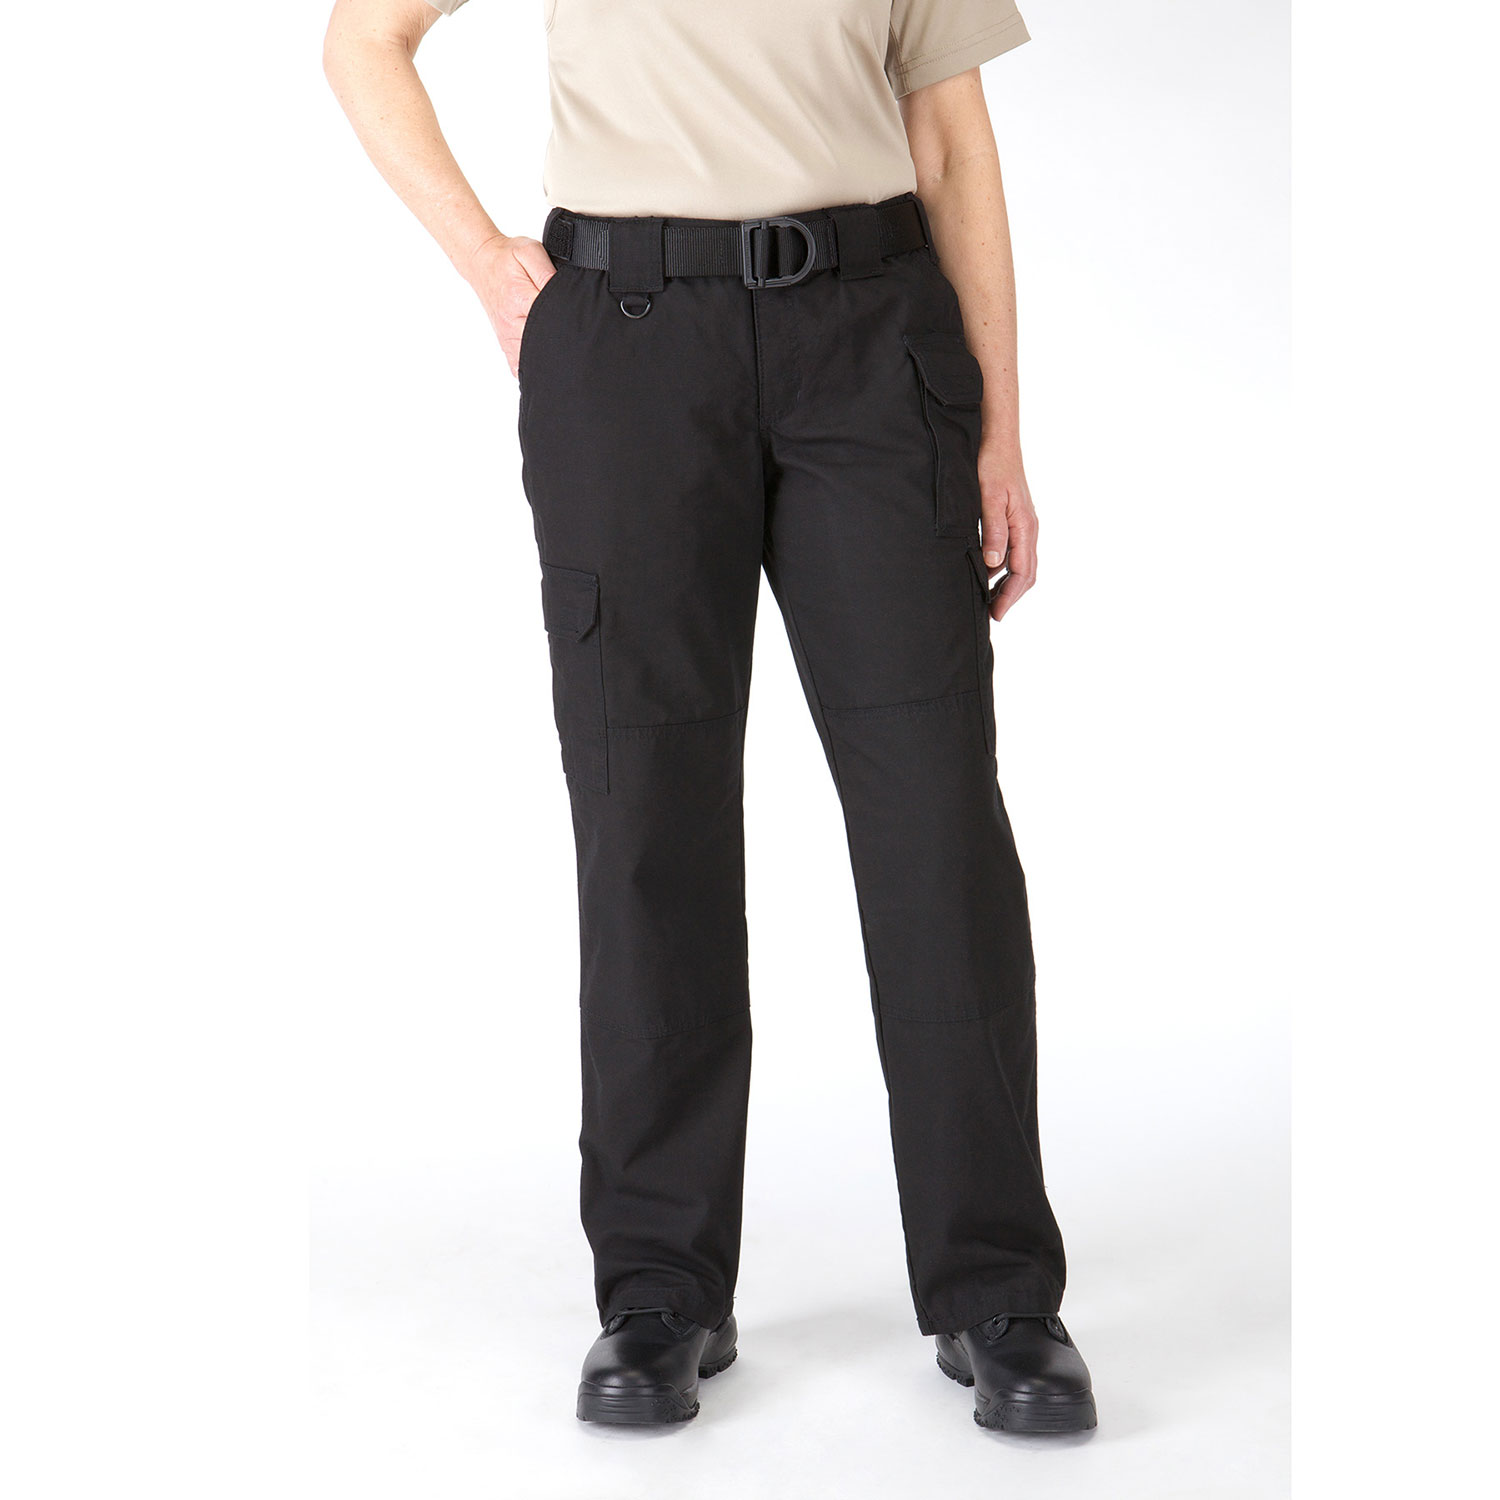 5.11 Tactical Women's Tactical Pants